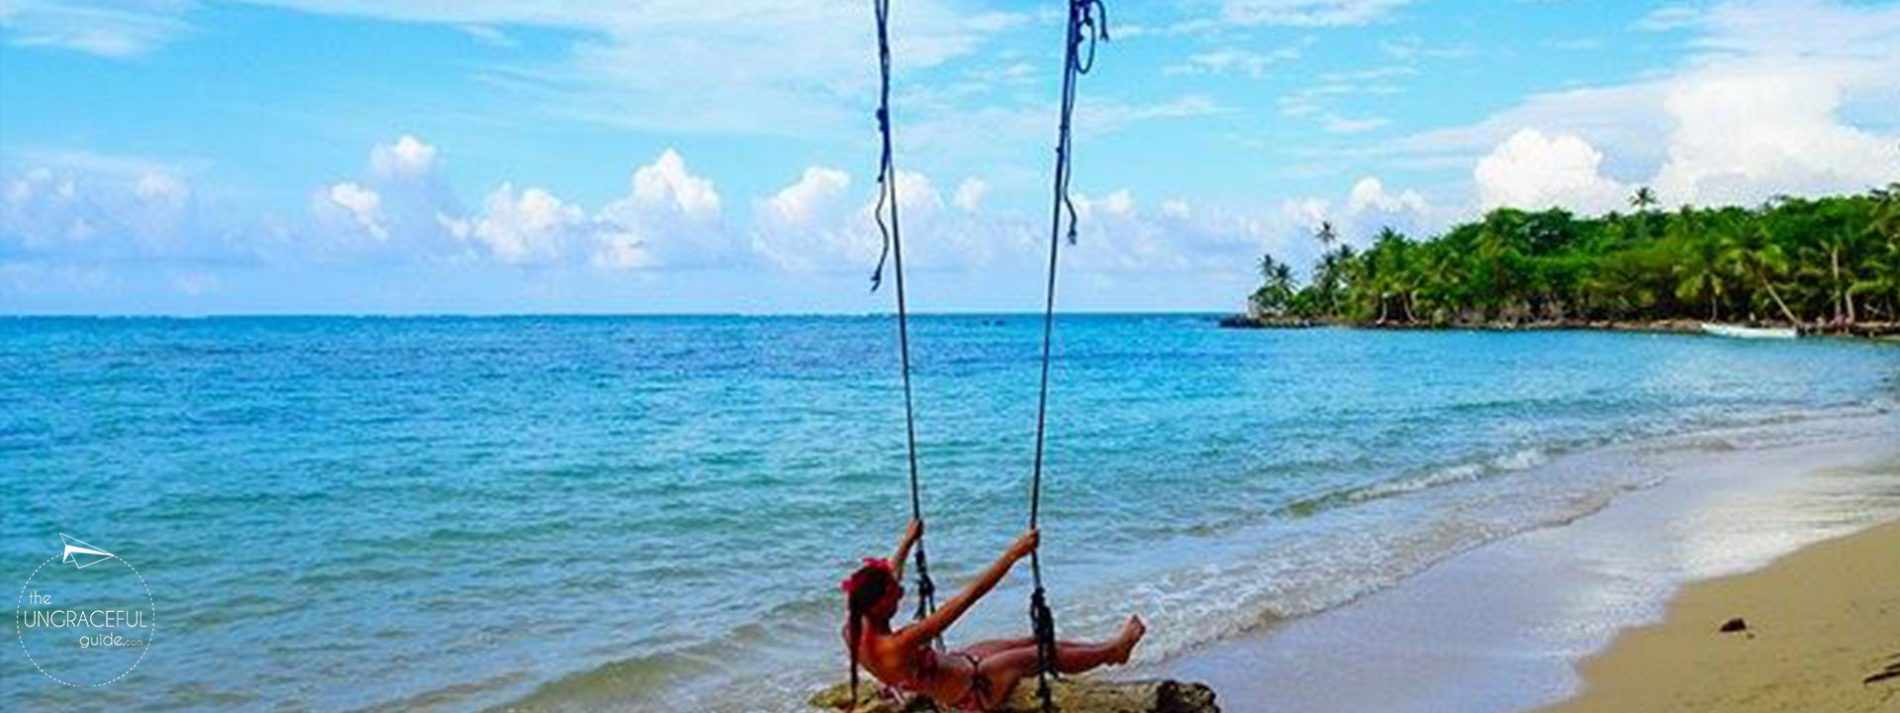 "<img src=""images/"" width=""800"" height=""600"" alt=""little corn - corn stretched - Nicaragua: A Little Slice of Paradise called Little Corn Island""> <img src=""images/"" width=""800"" height=""600"" alt=""the corn islands - corn stretched - The Corn Islands"">"